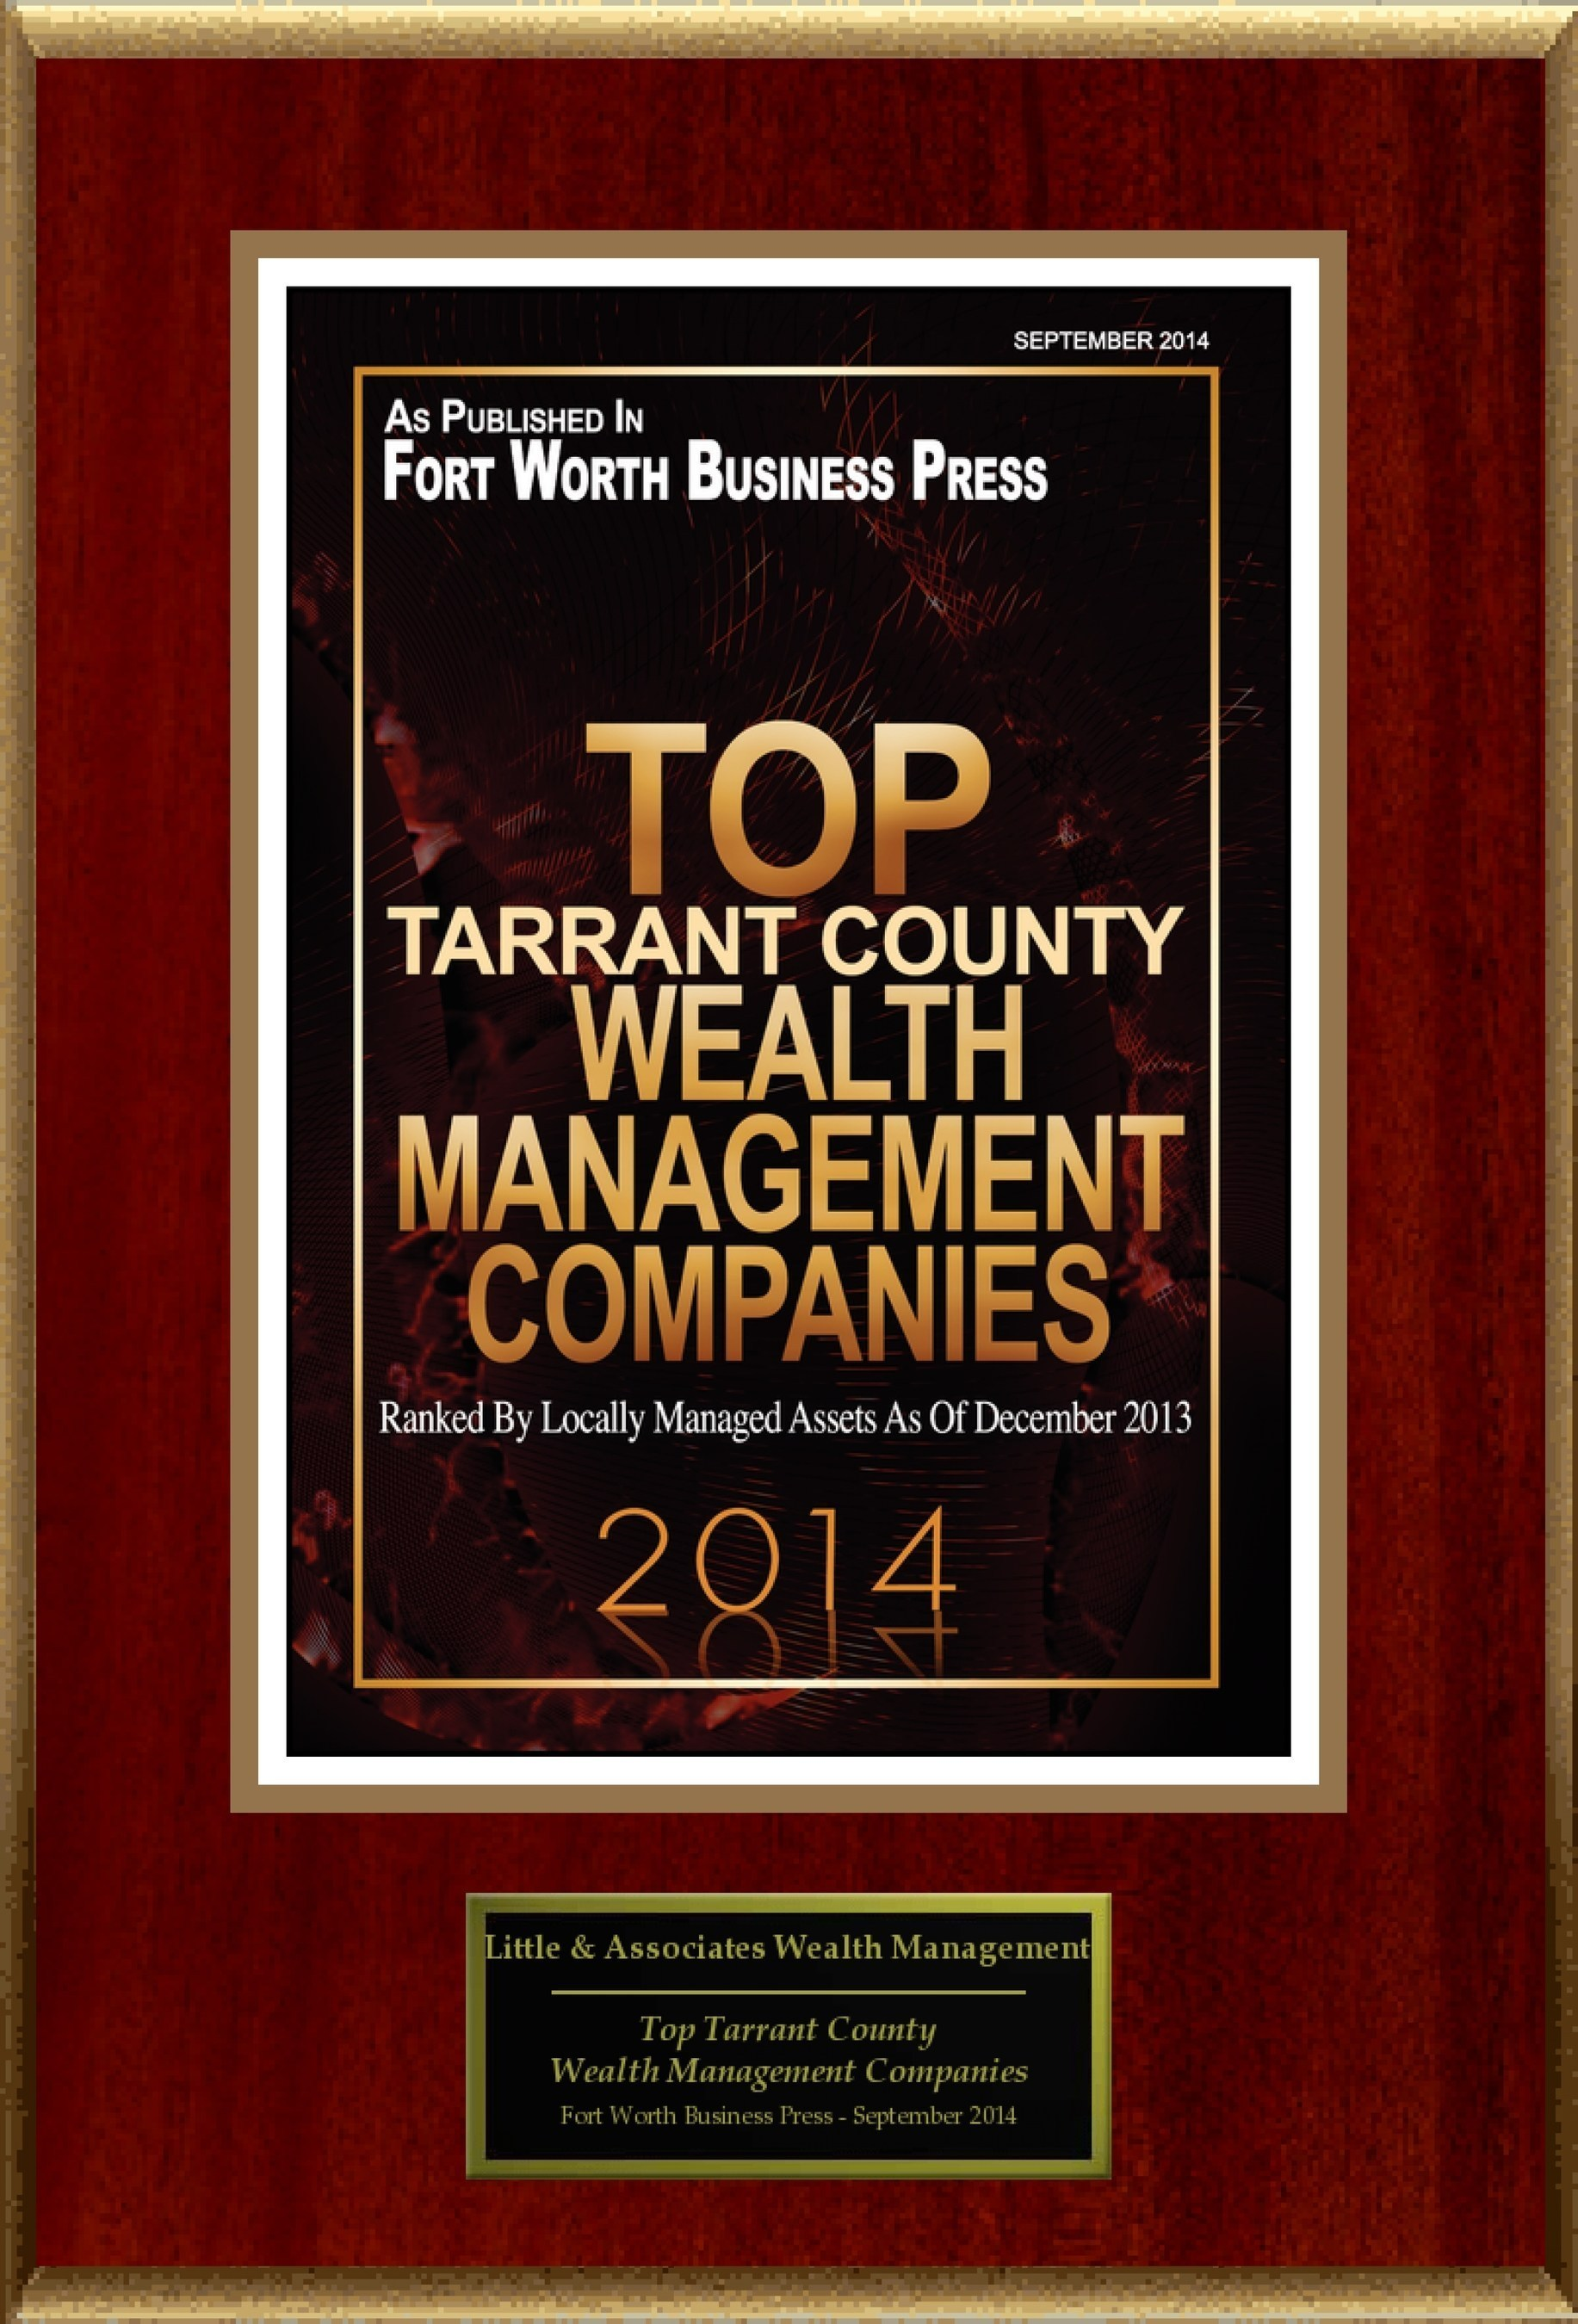 """Little & Associates Wealth Management Selected For """"Top Tarrant County Wealth Management Companies"""""""